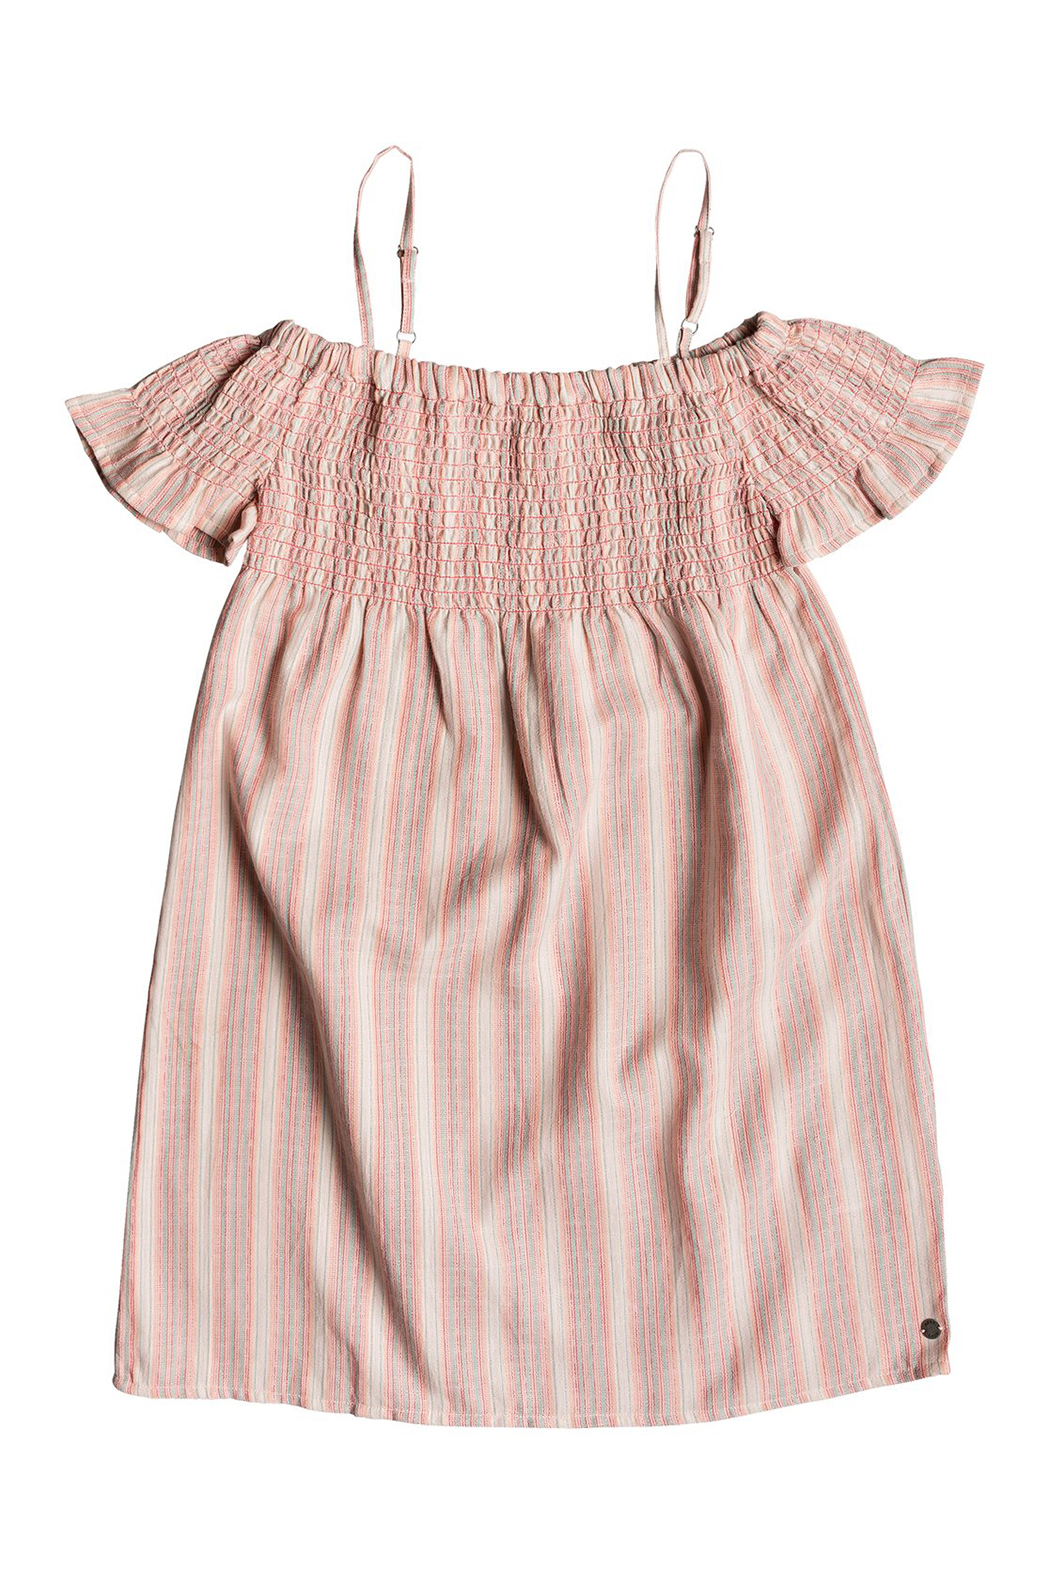 Roxy Smocky Sun Off-The-Shoulder Dress - Front Cropped Image